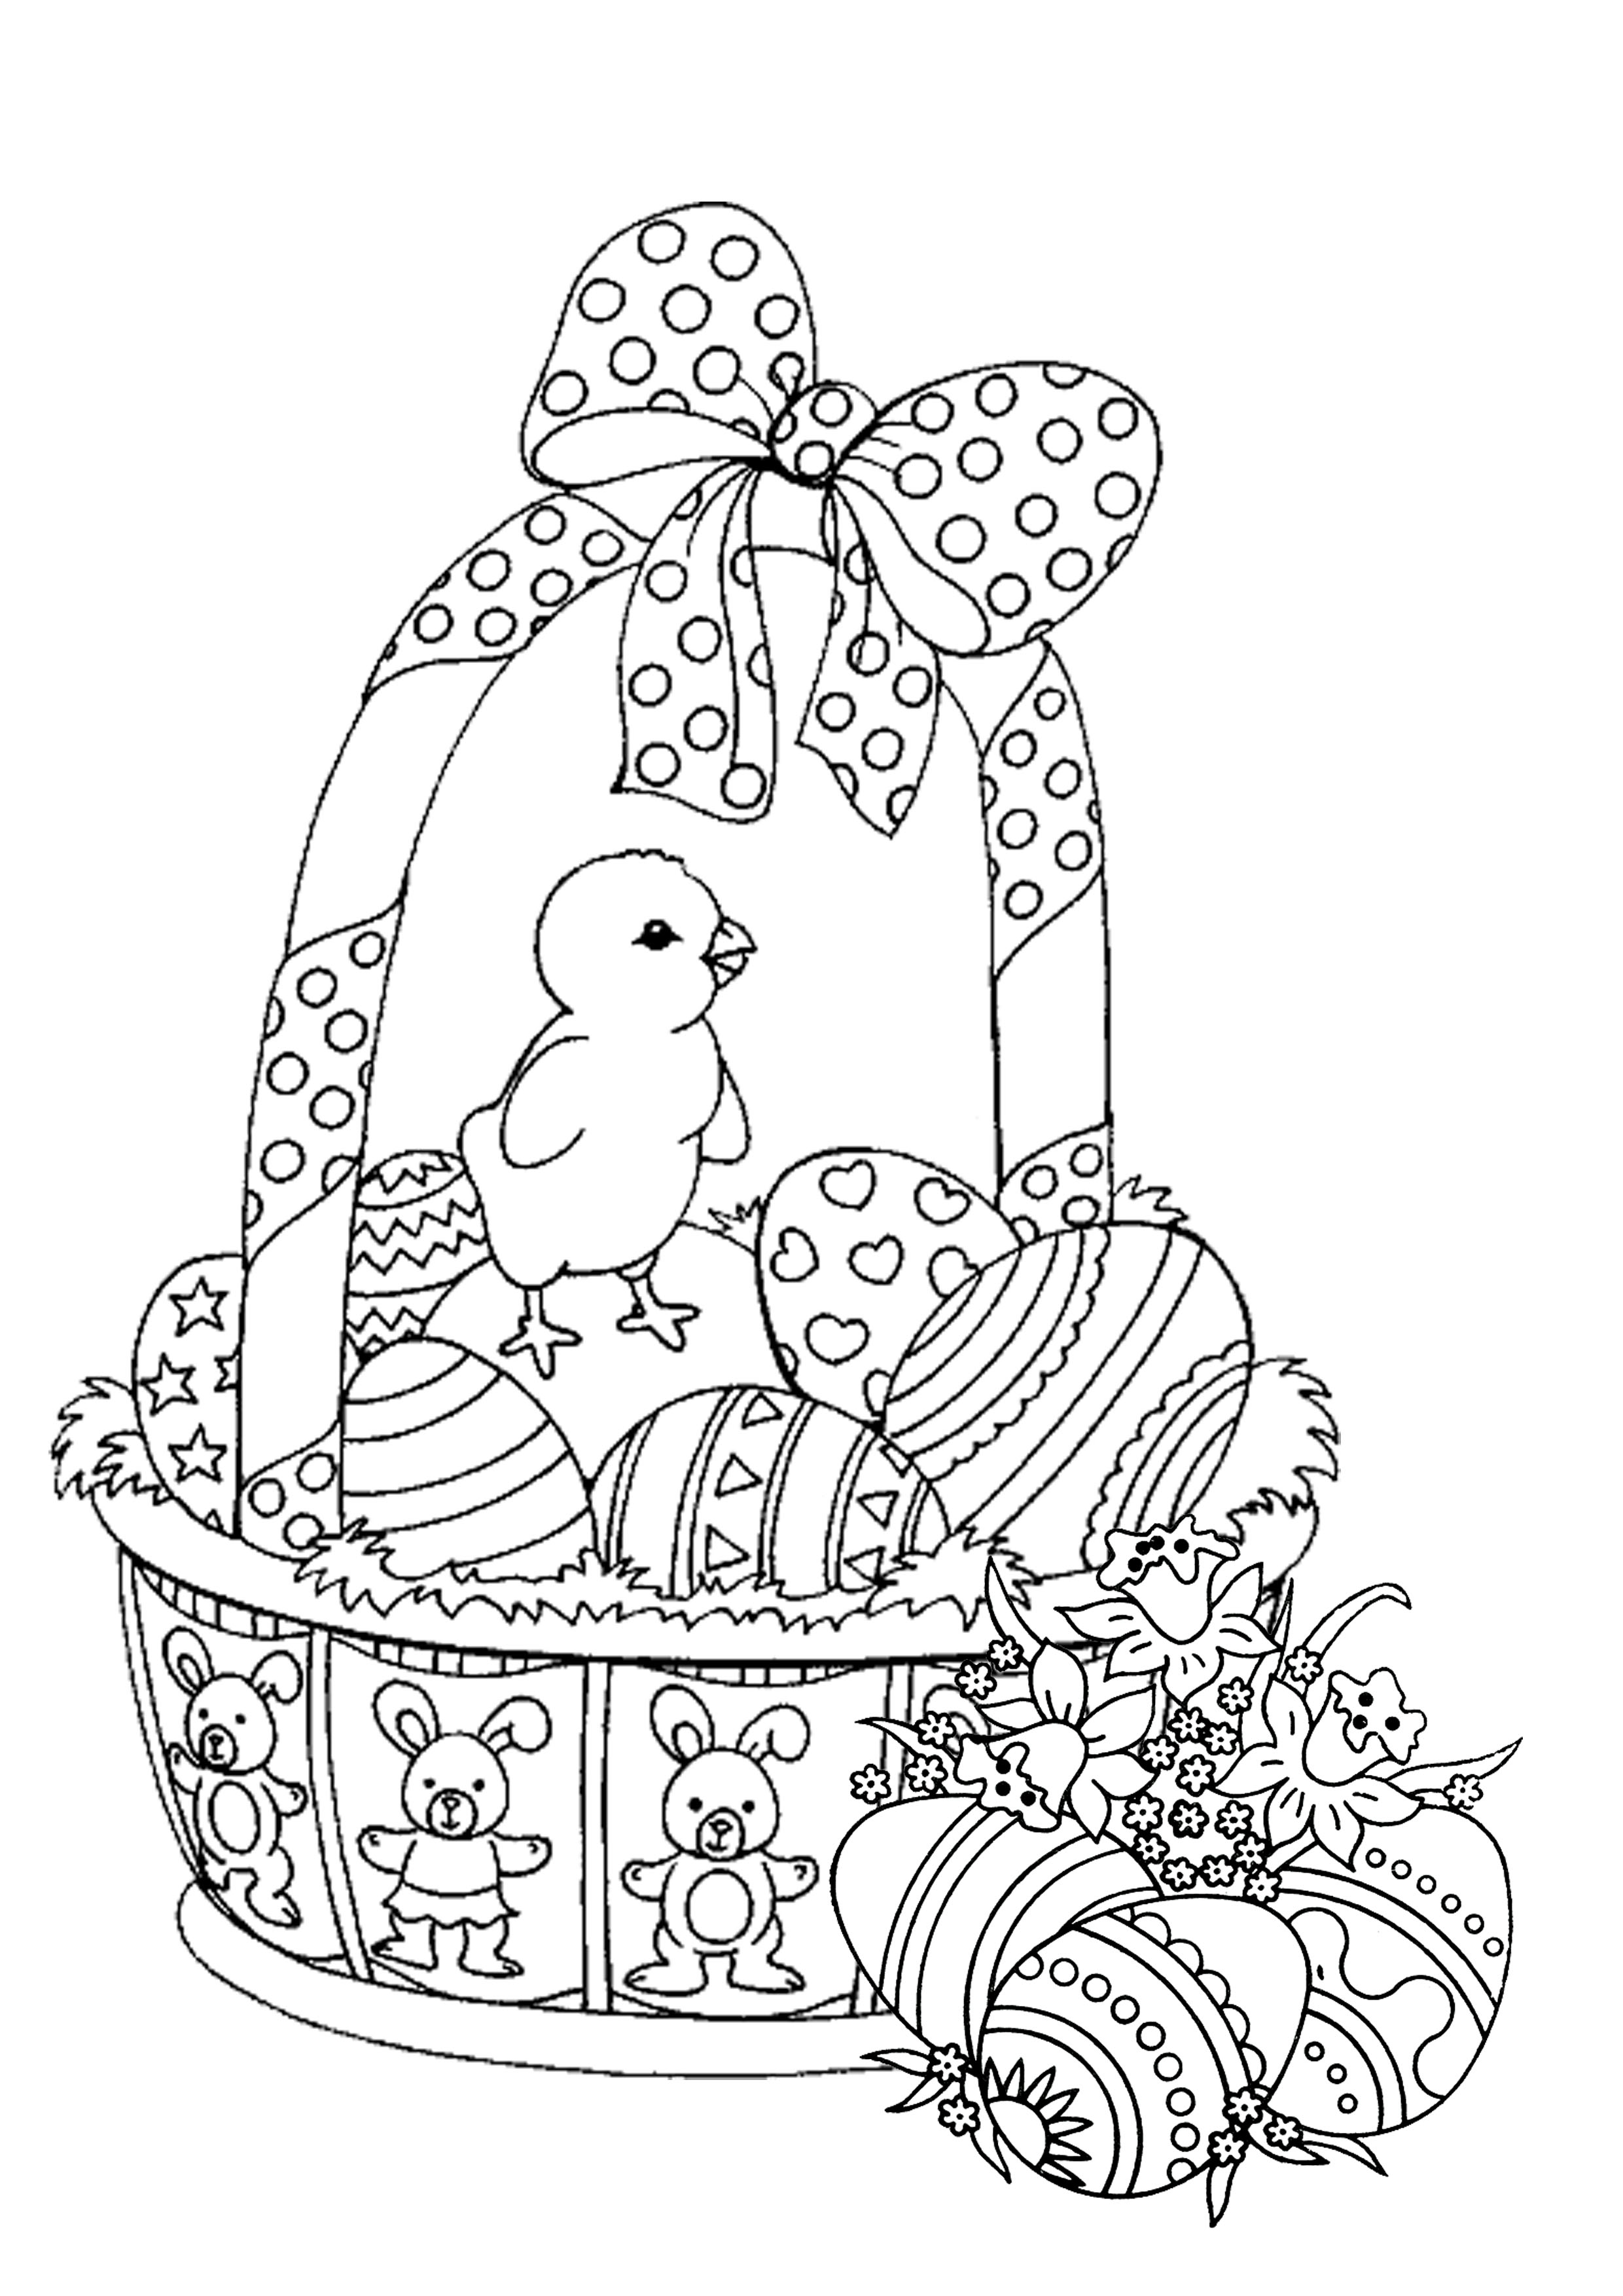 easter coloring pages printable easter coloring pages for adults best coloring pages for easter printable pages coloring